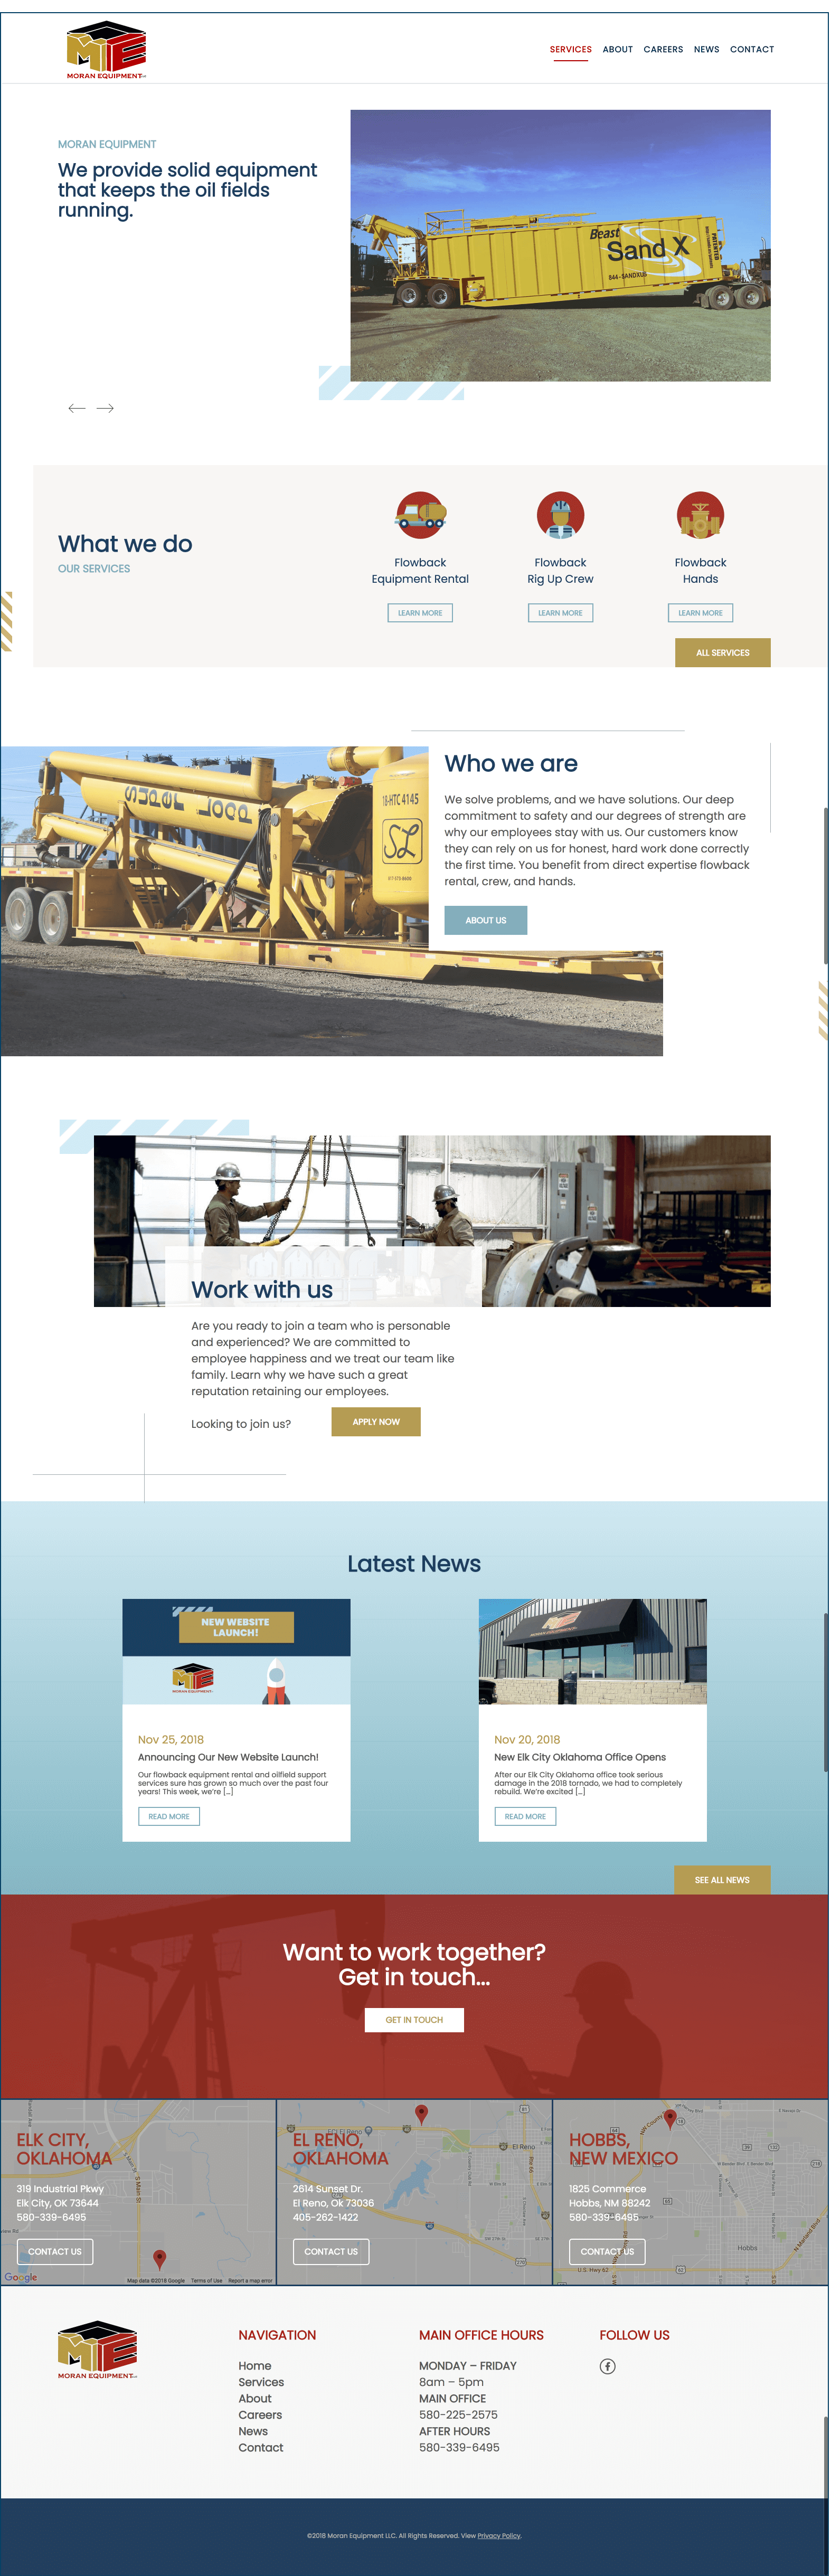 website redesign for Moran Equipment in Elk City Oklahoma by Wooster Creative